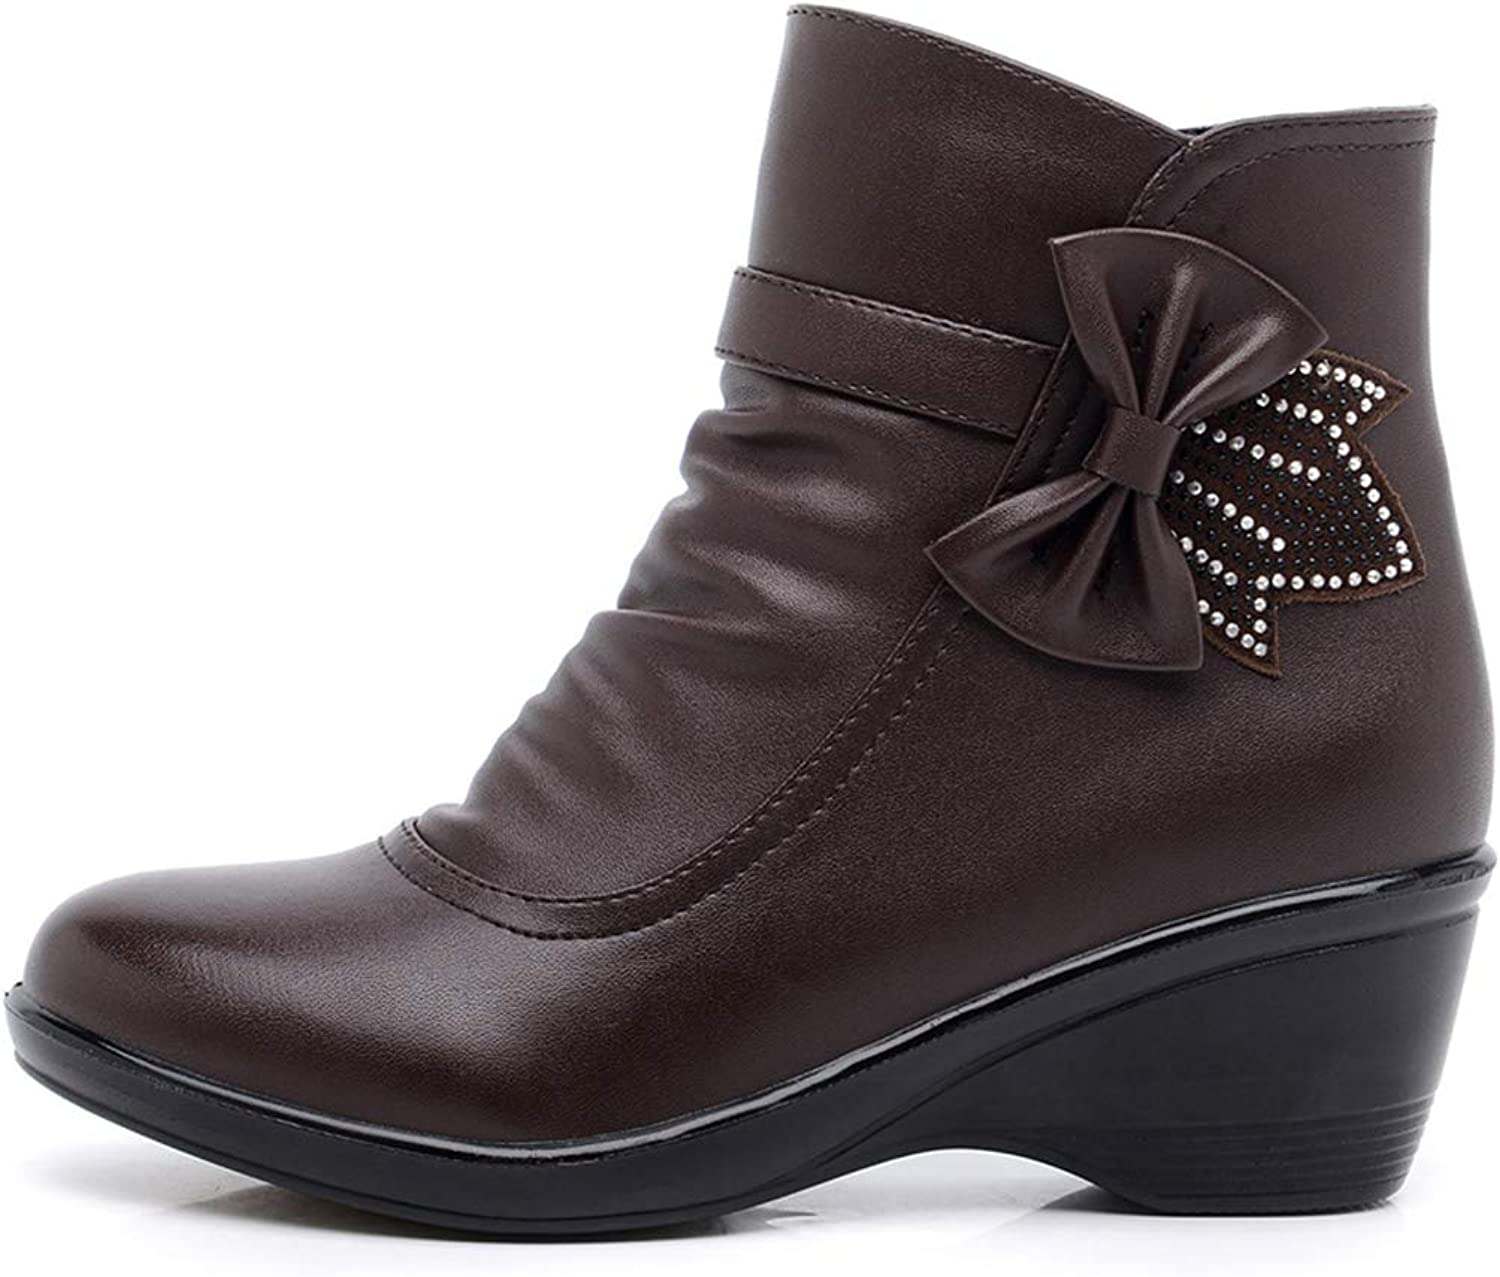 Women Ankle Boots Bow-Knot Wedge Low Heel Round Toe Zipper Winter Warm Plush Lining Antislip Short Snow shoes